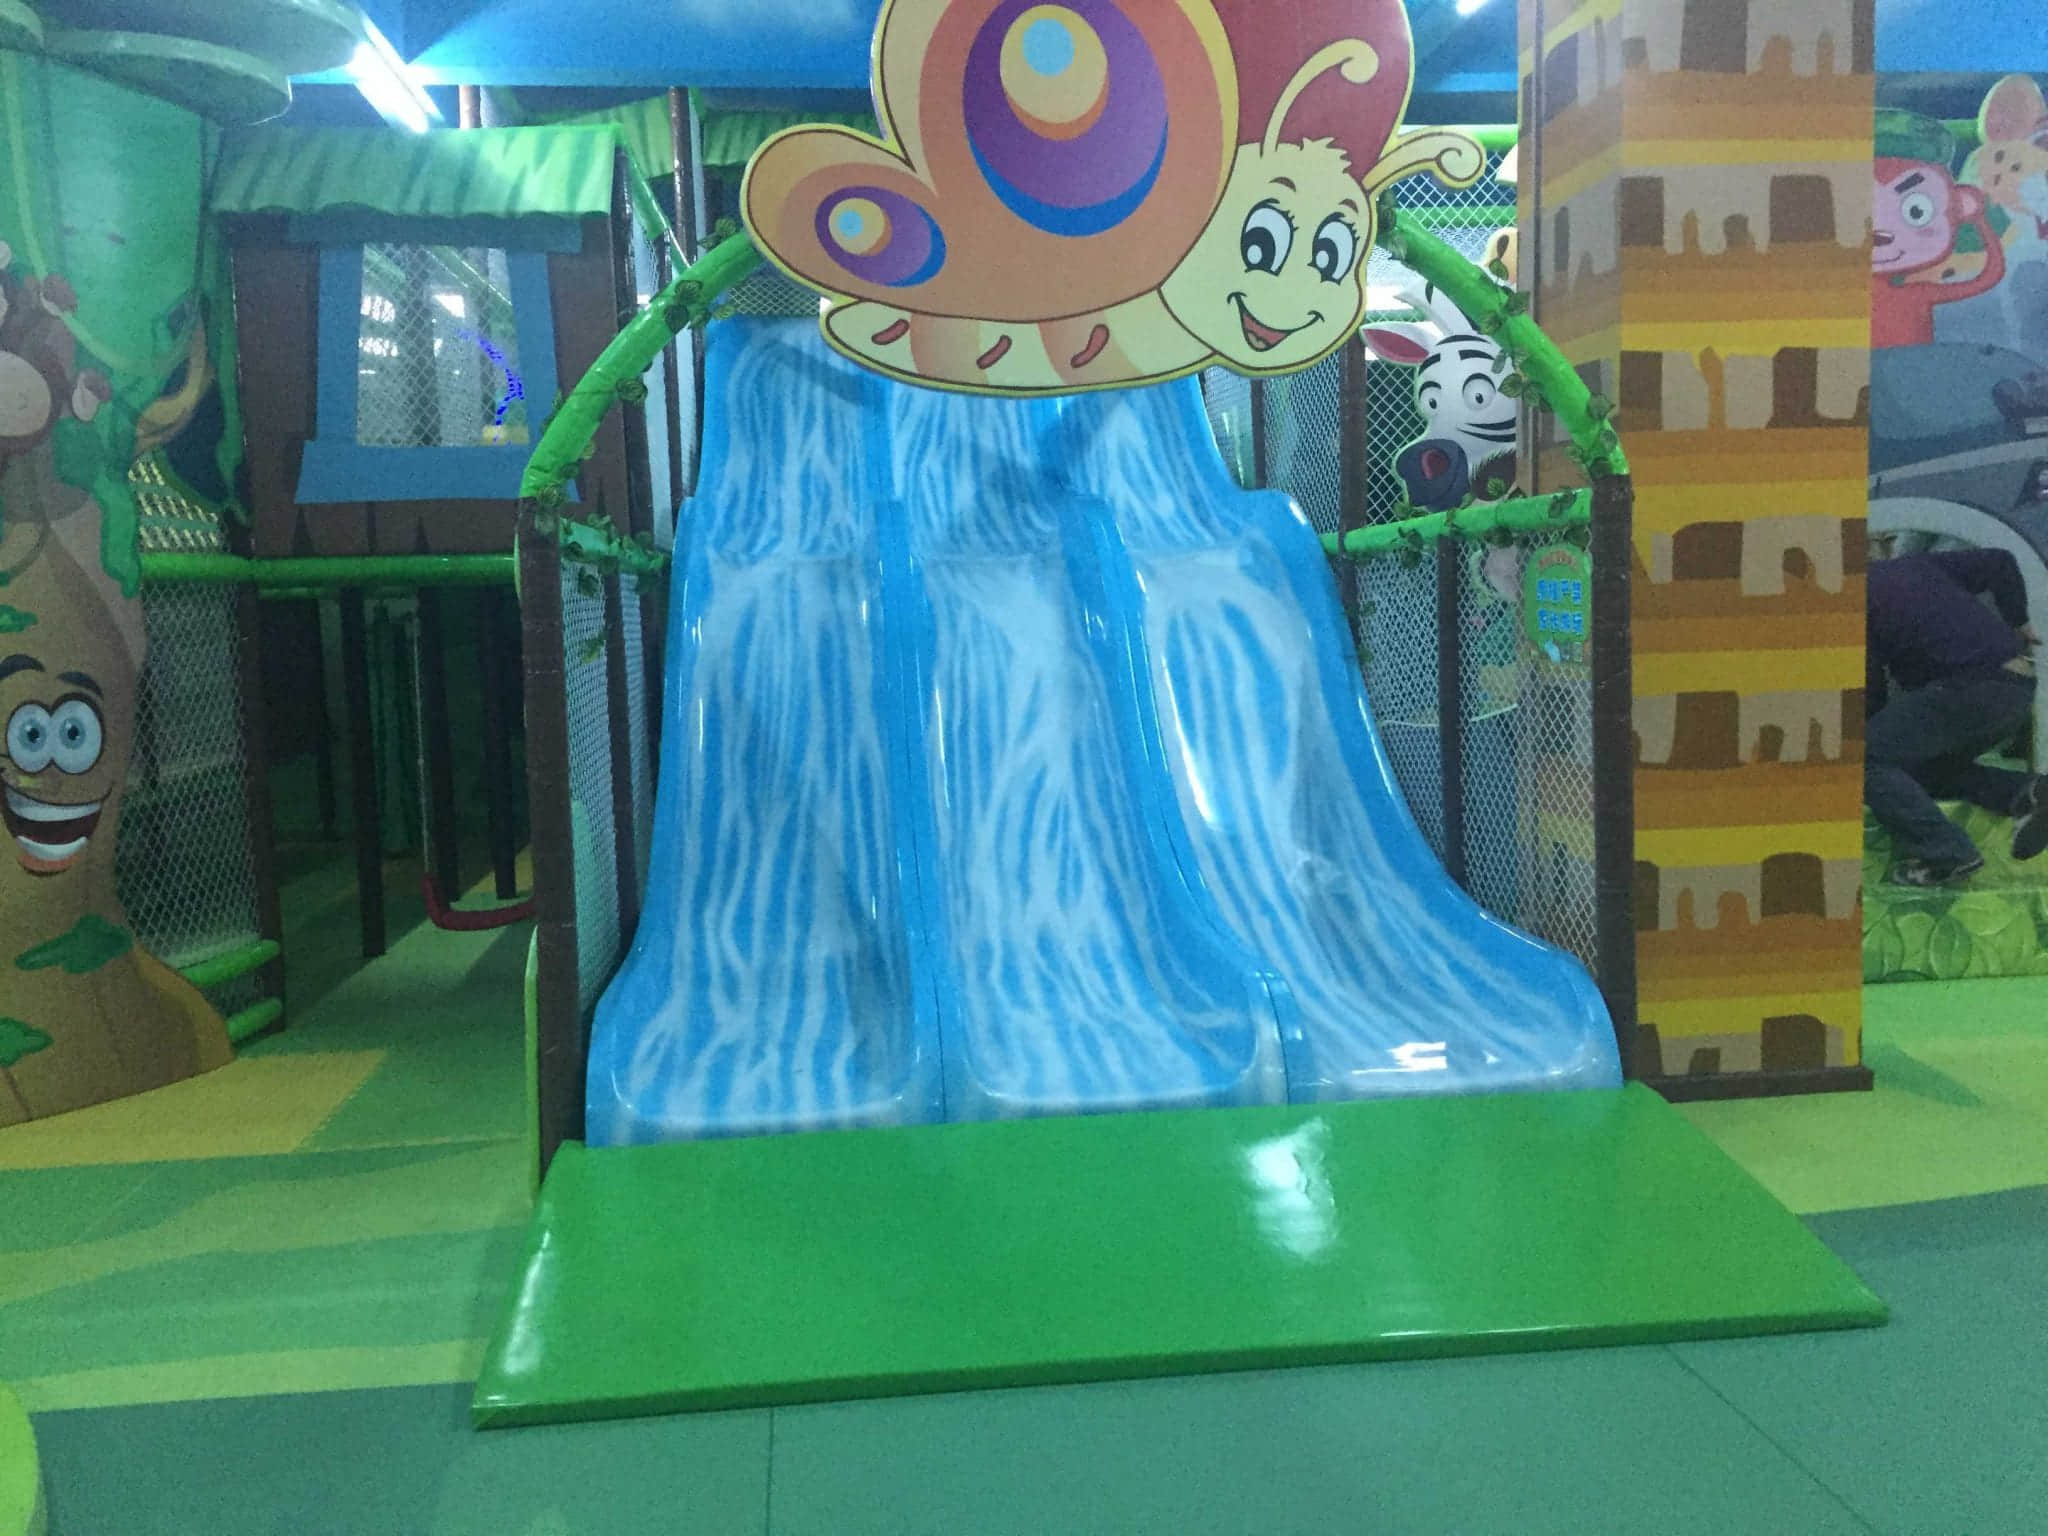 the slide of indoor playground